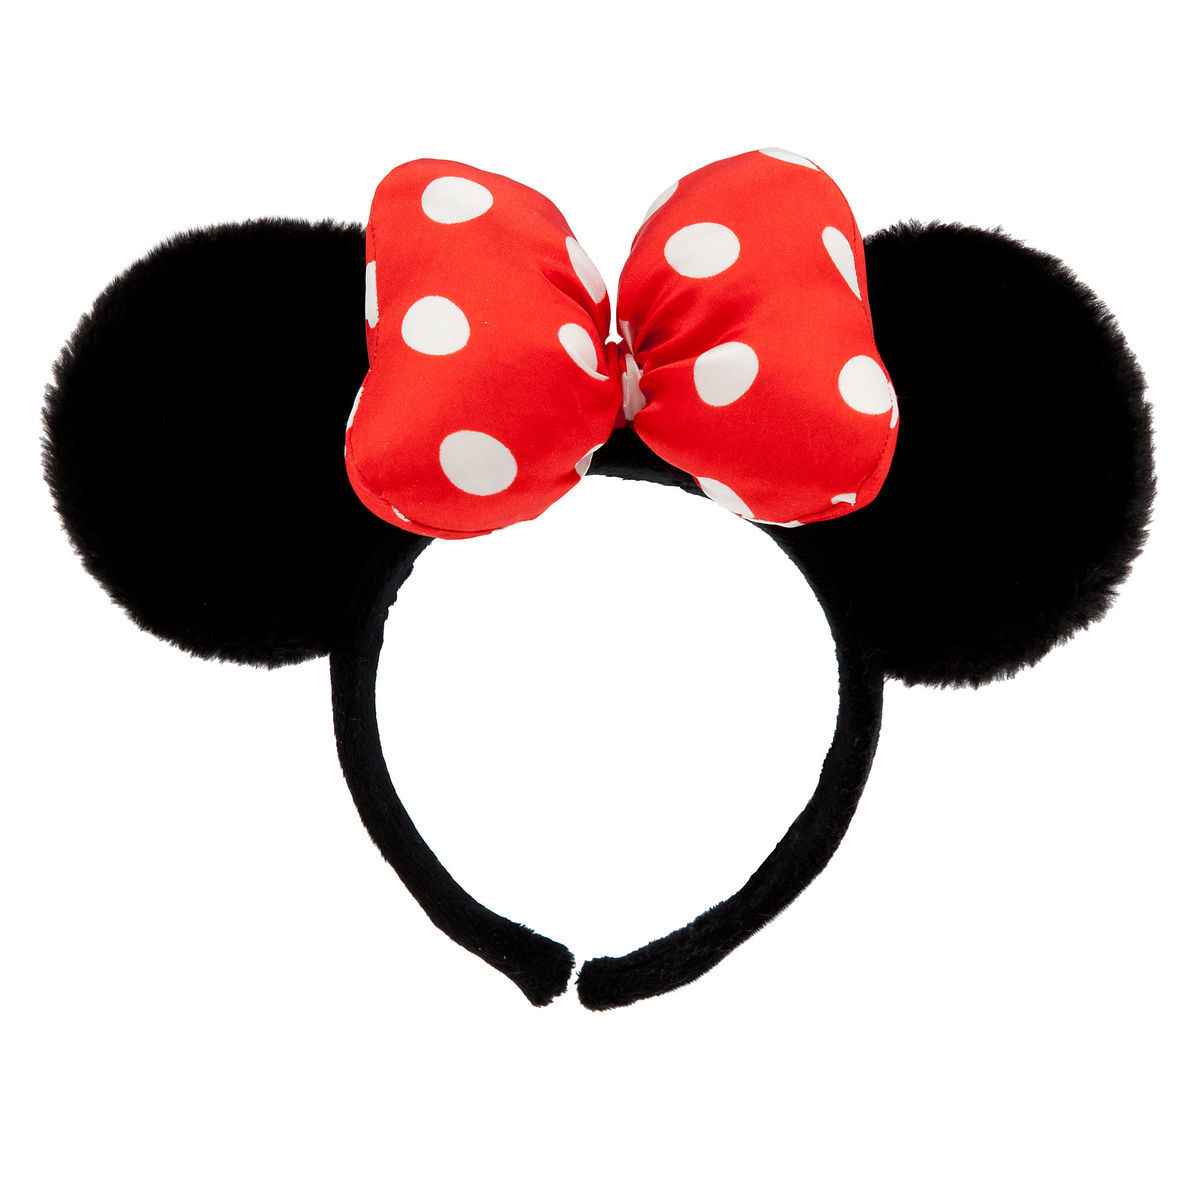 Product Image Of Minnie Mouse Ear Headband Plush 1